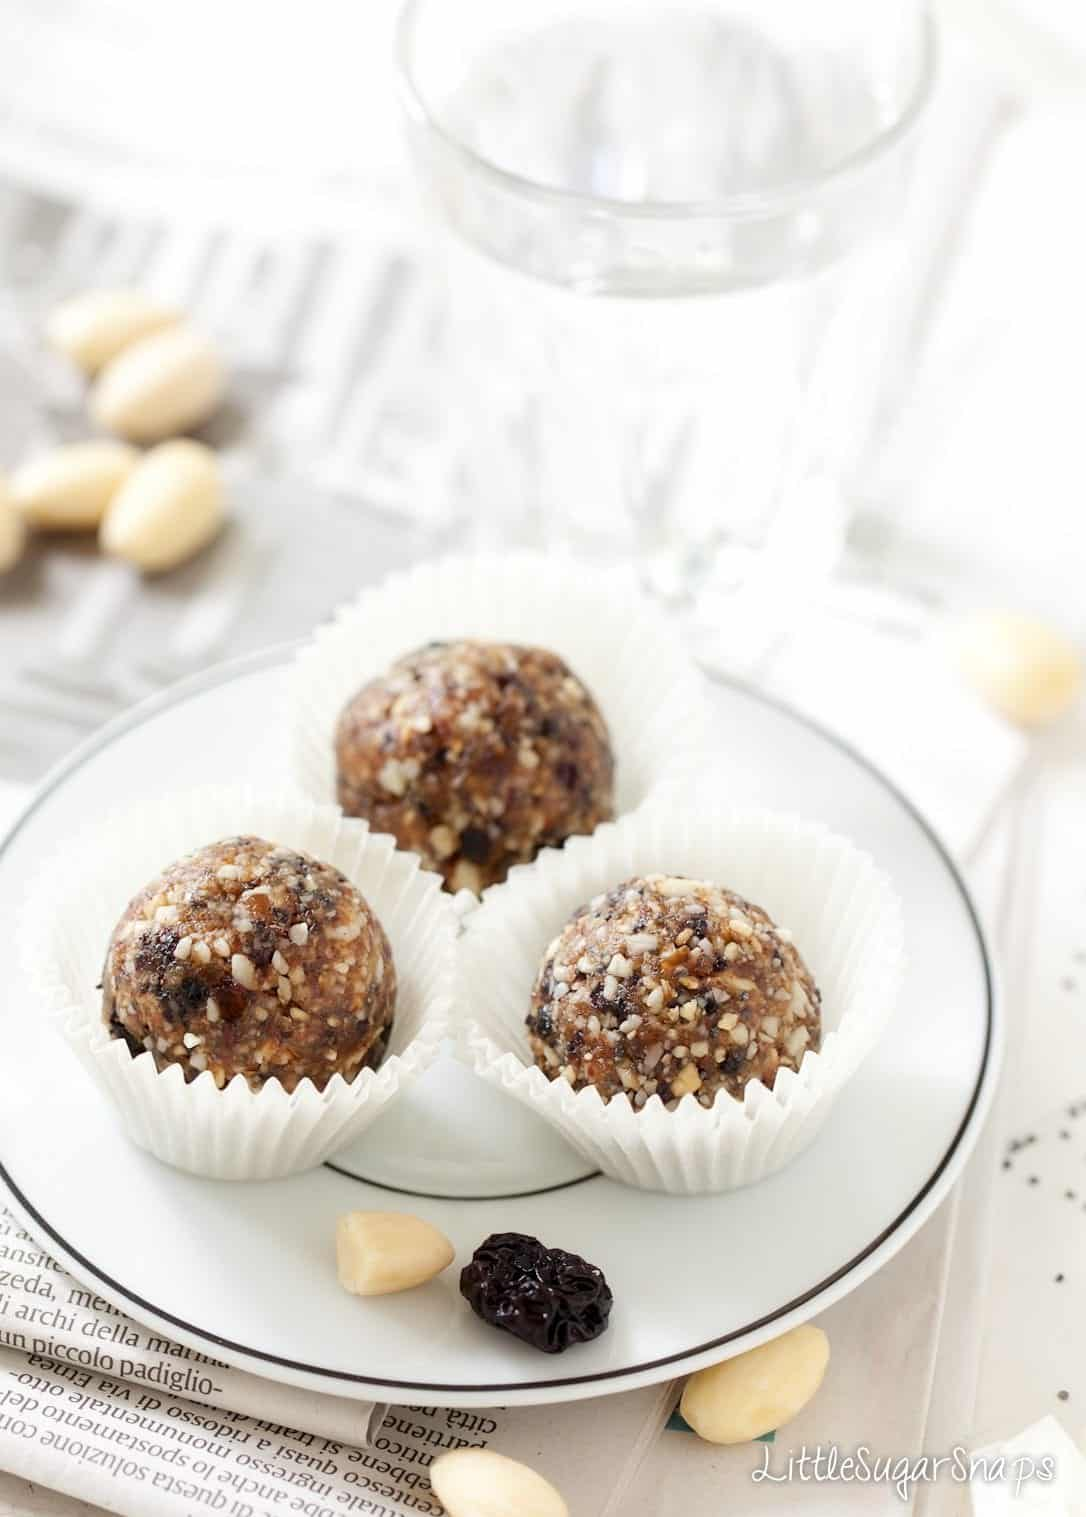 Three Cherry Bakewell Almond Energy Balls on a plate.